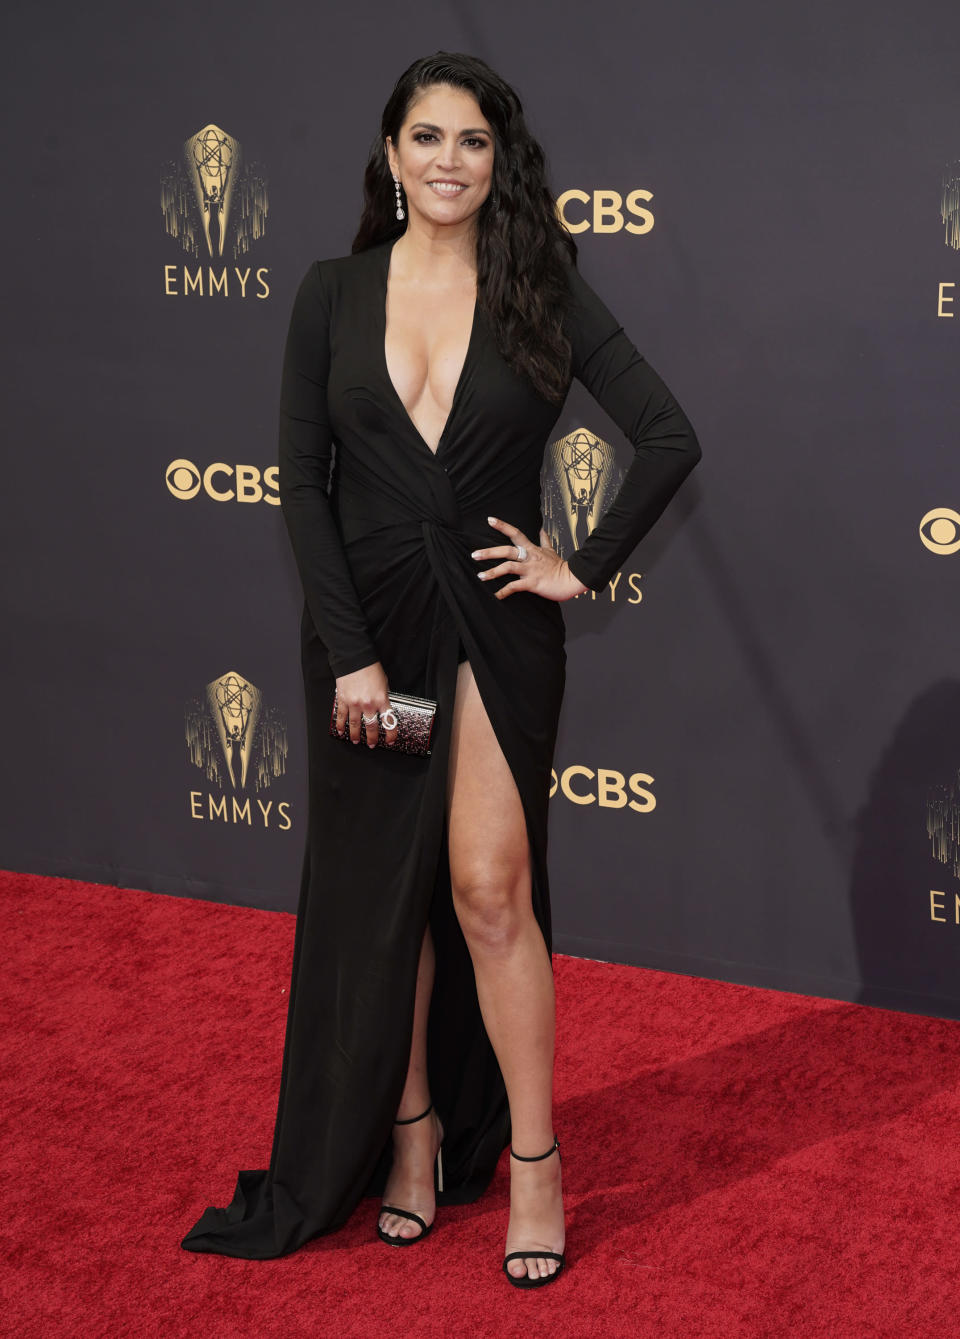 Cecily Strong arrives at the 73rd Primetime Emmy Awards on Sunday, Sept. 19, 2021, at L.A. Live in Los Angeles. (AP Photo/Chris Pizzello)